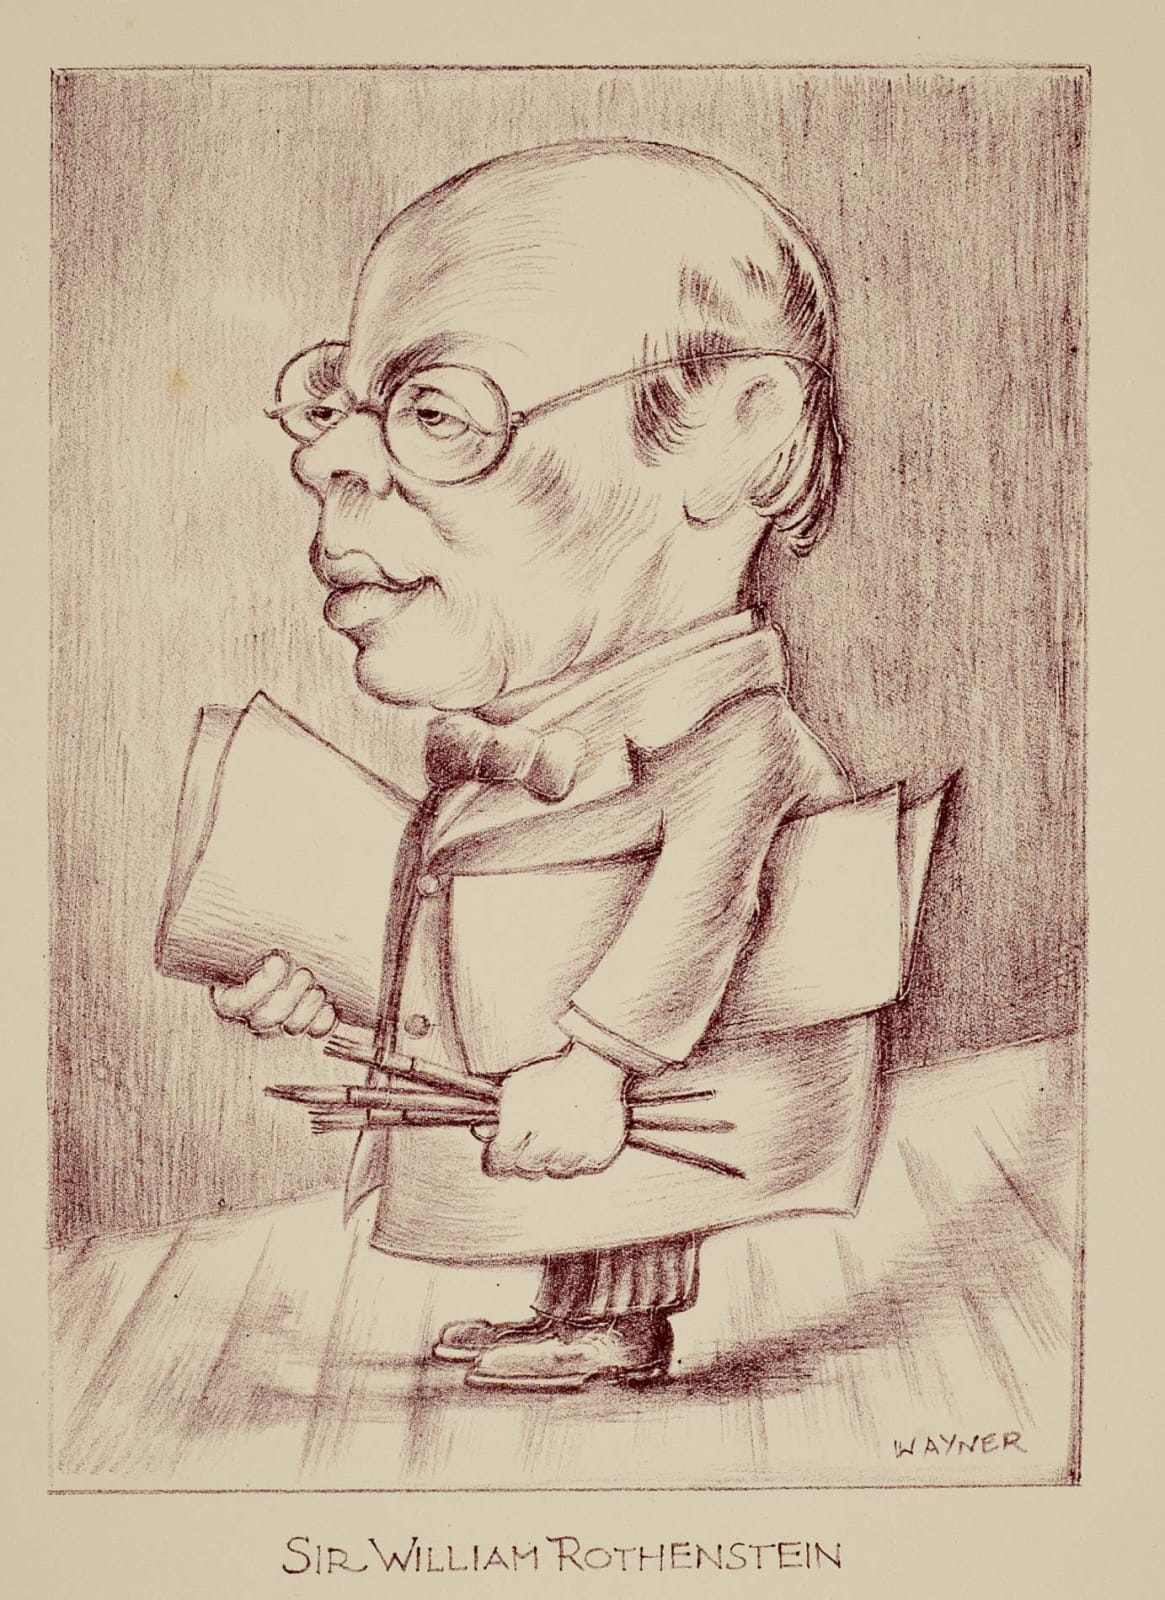 Mark Wayner (1888-1980) Celebrities in Caricature: Sir William Rothenstein c. 1940-43 Stone lithograph on paper 35.5 x 24 cm Ben Uri Collection © Mark Wayner estate To see and discover more about this artist click here